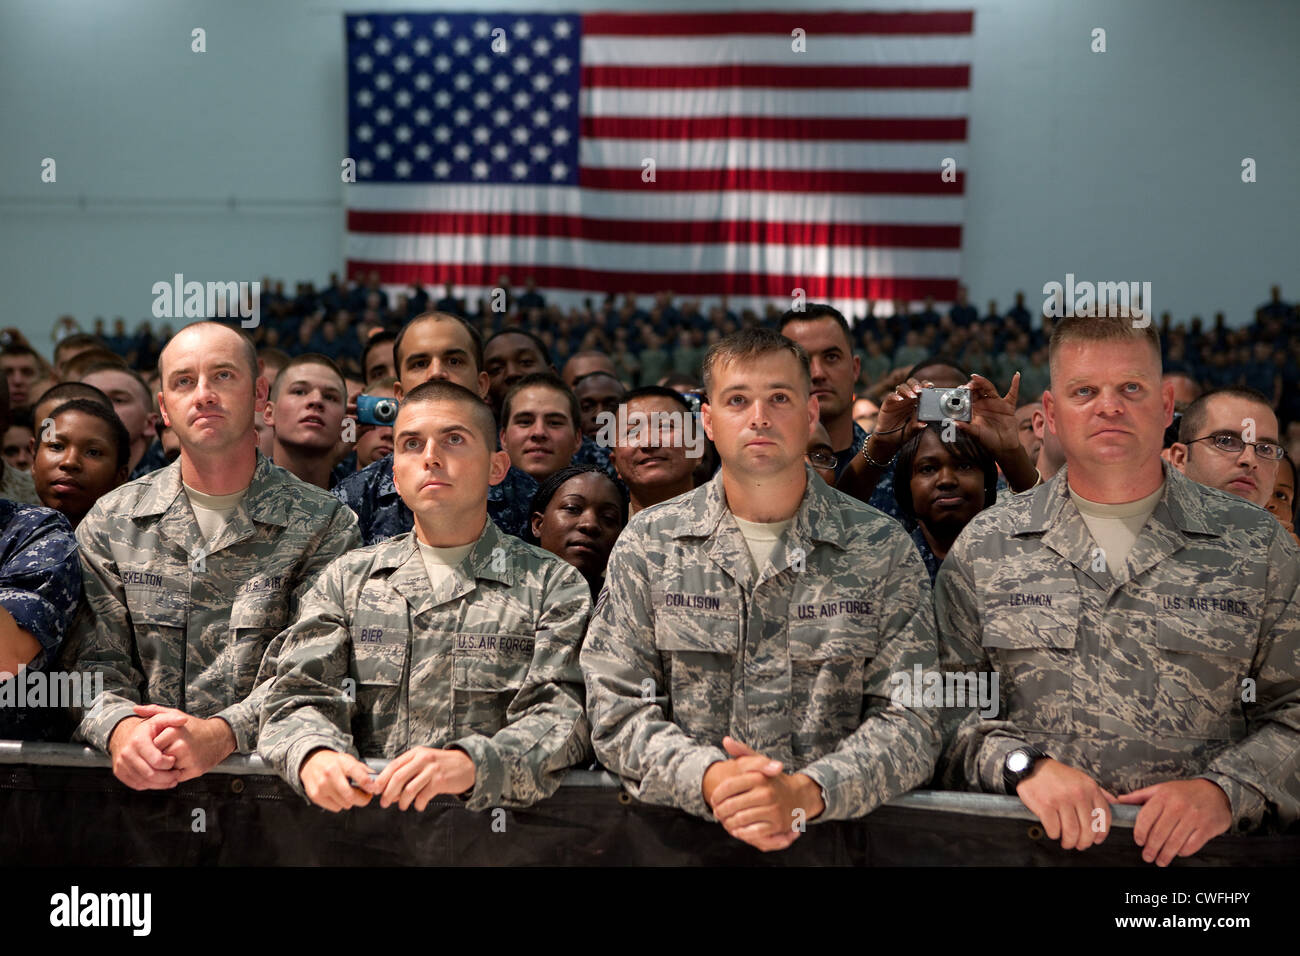 Audience members listen as President Barack Obama delivers remarks during an event with military personnel at the - Stock Image